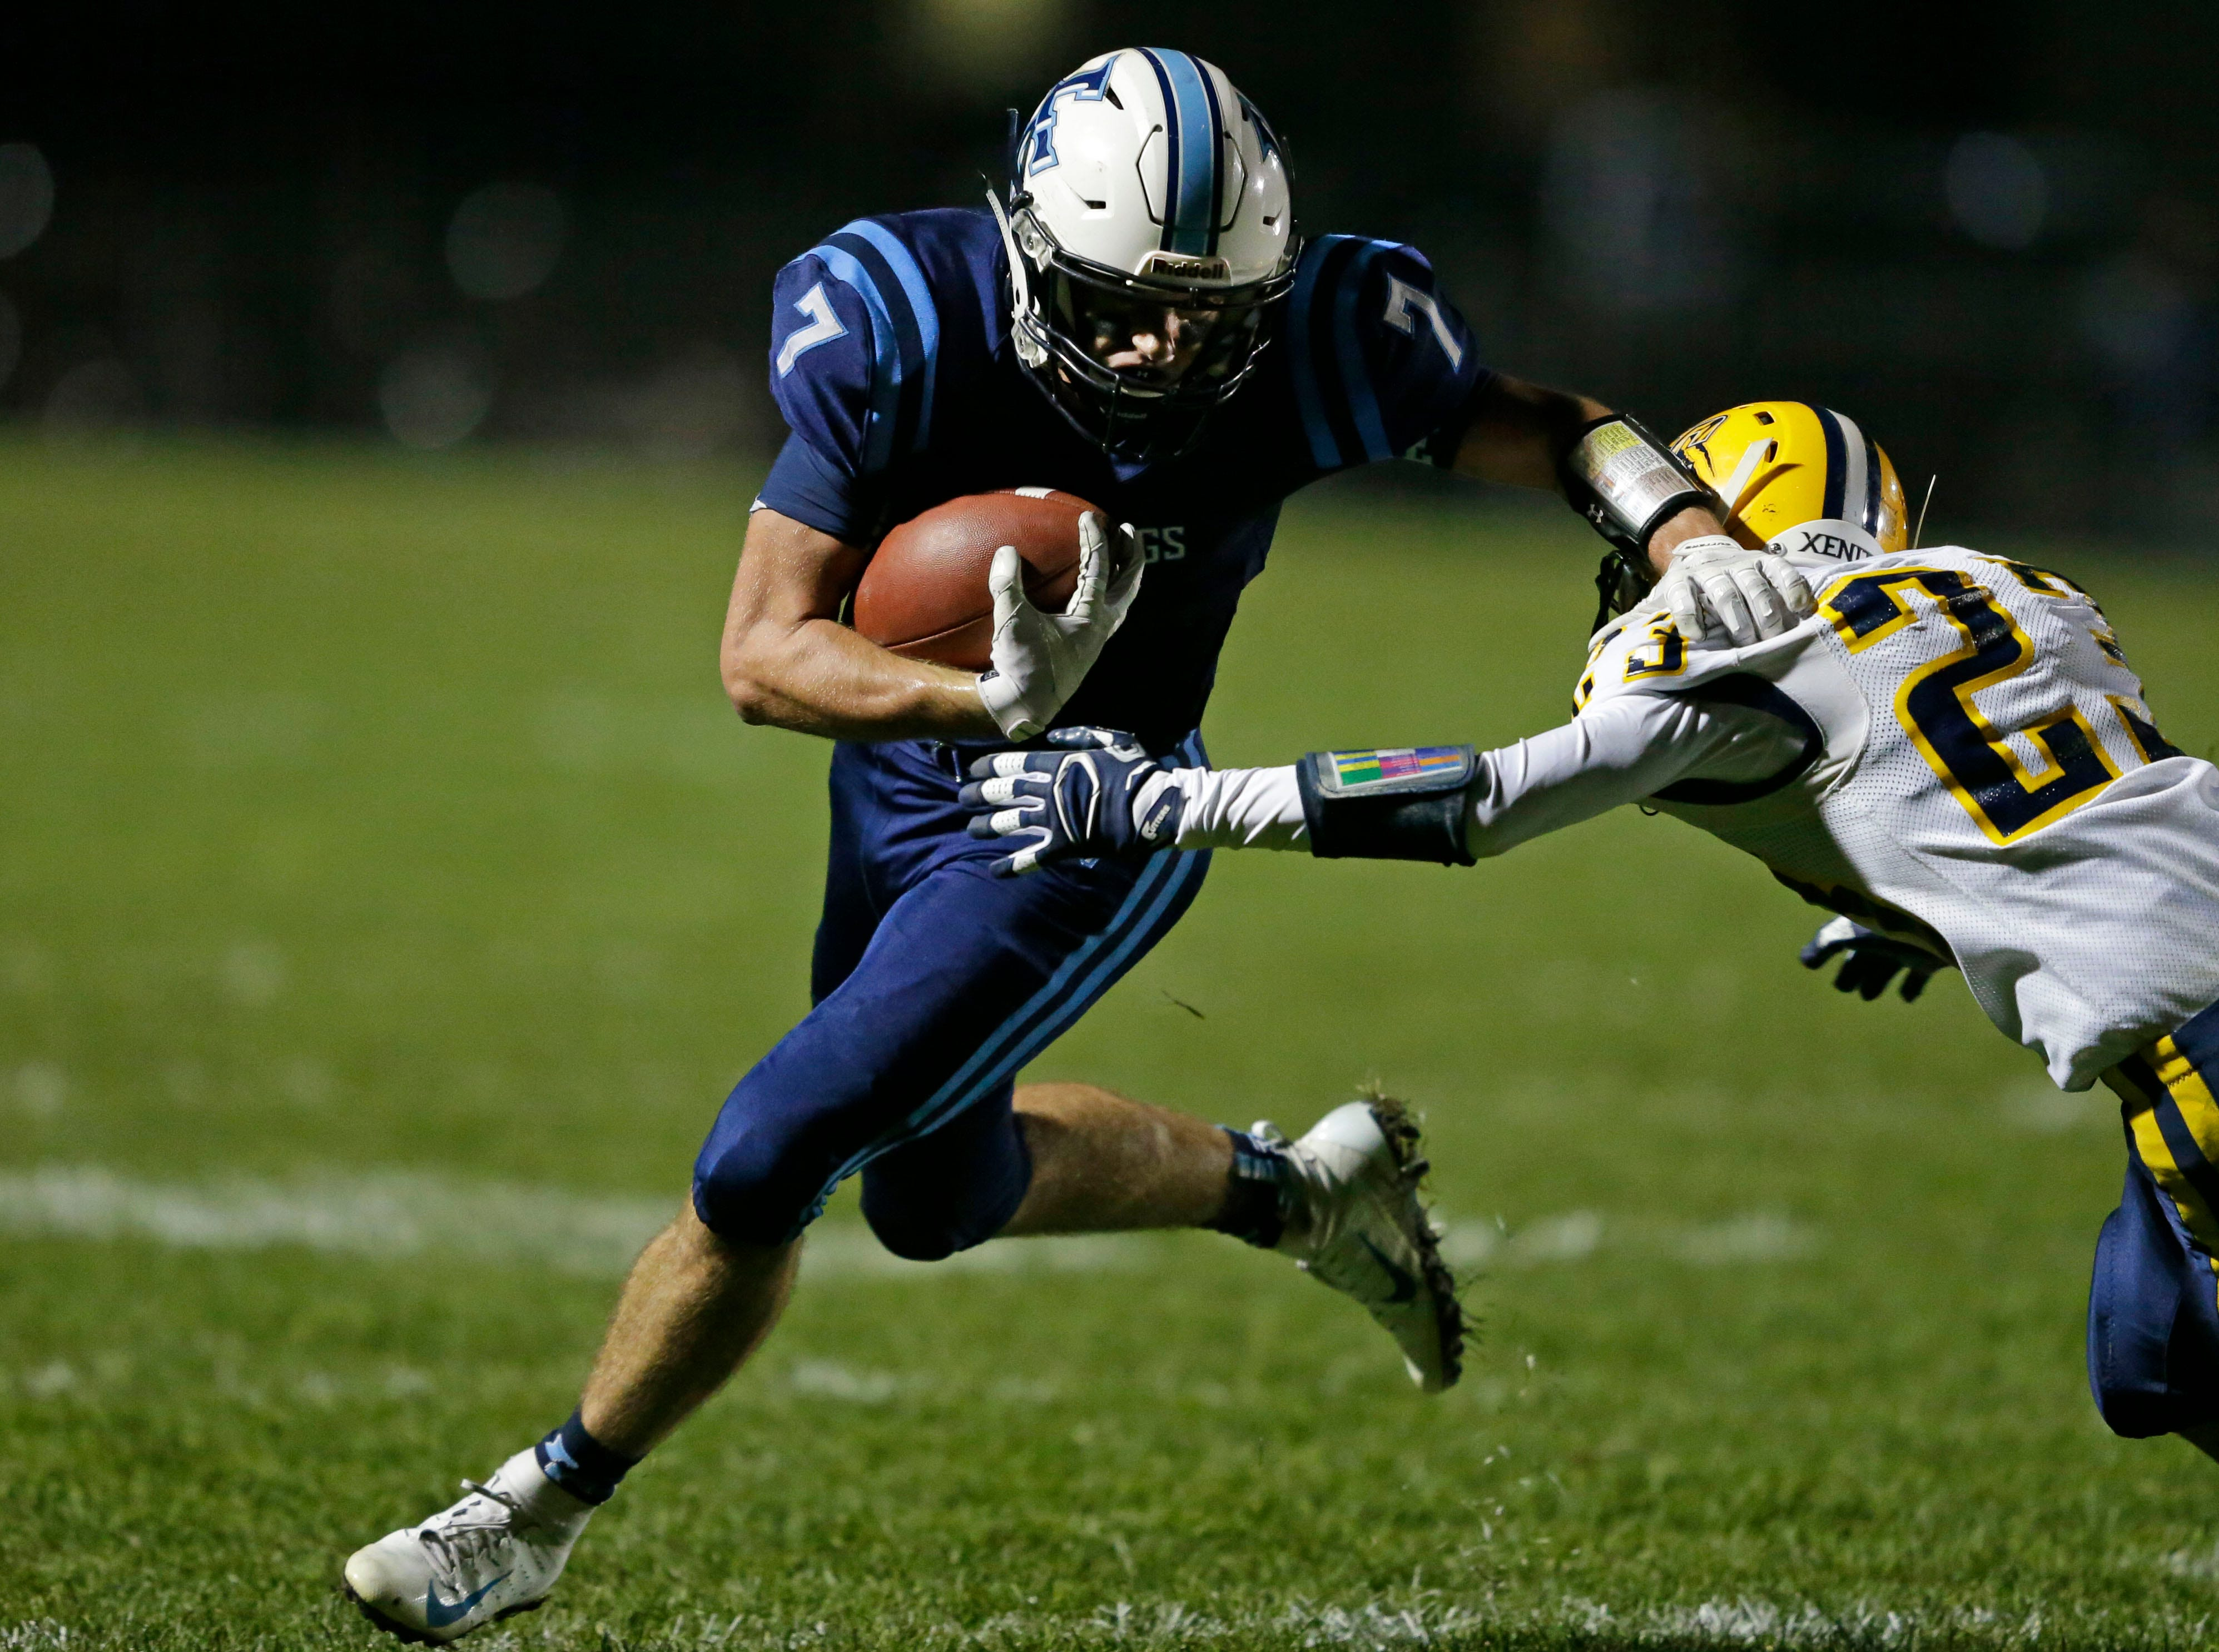 Adam Hietpas of Little Chute tries to get around Camden Bowe of Chilton in a WIAA Division 4 second round football playoff game Friday, October 26, 2018, at Little Chute High School in Little Chute, Wis.Ron Page/USA TODAY NETWORK-Wisconsin